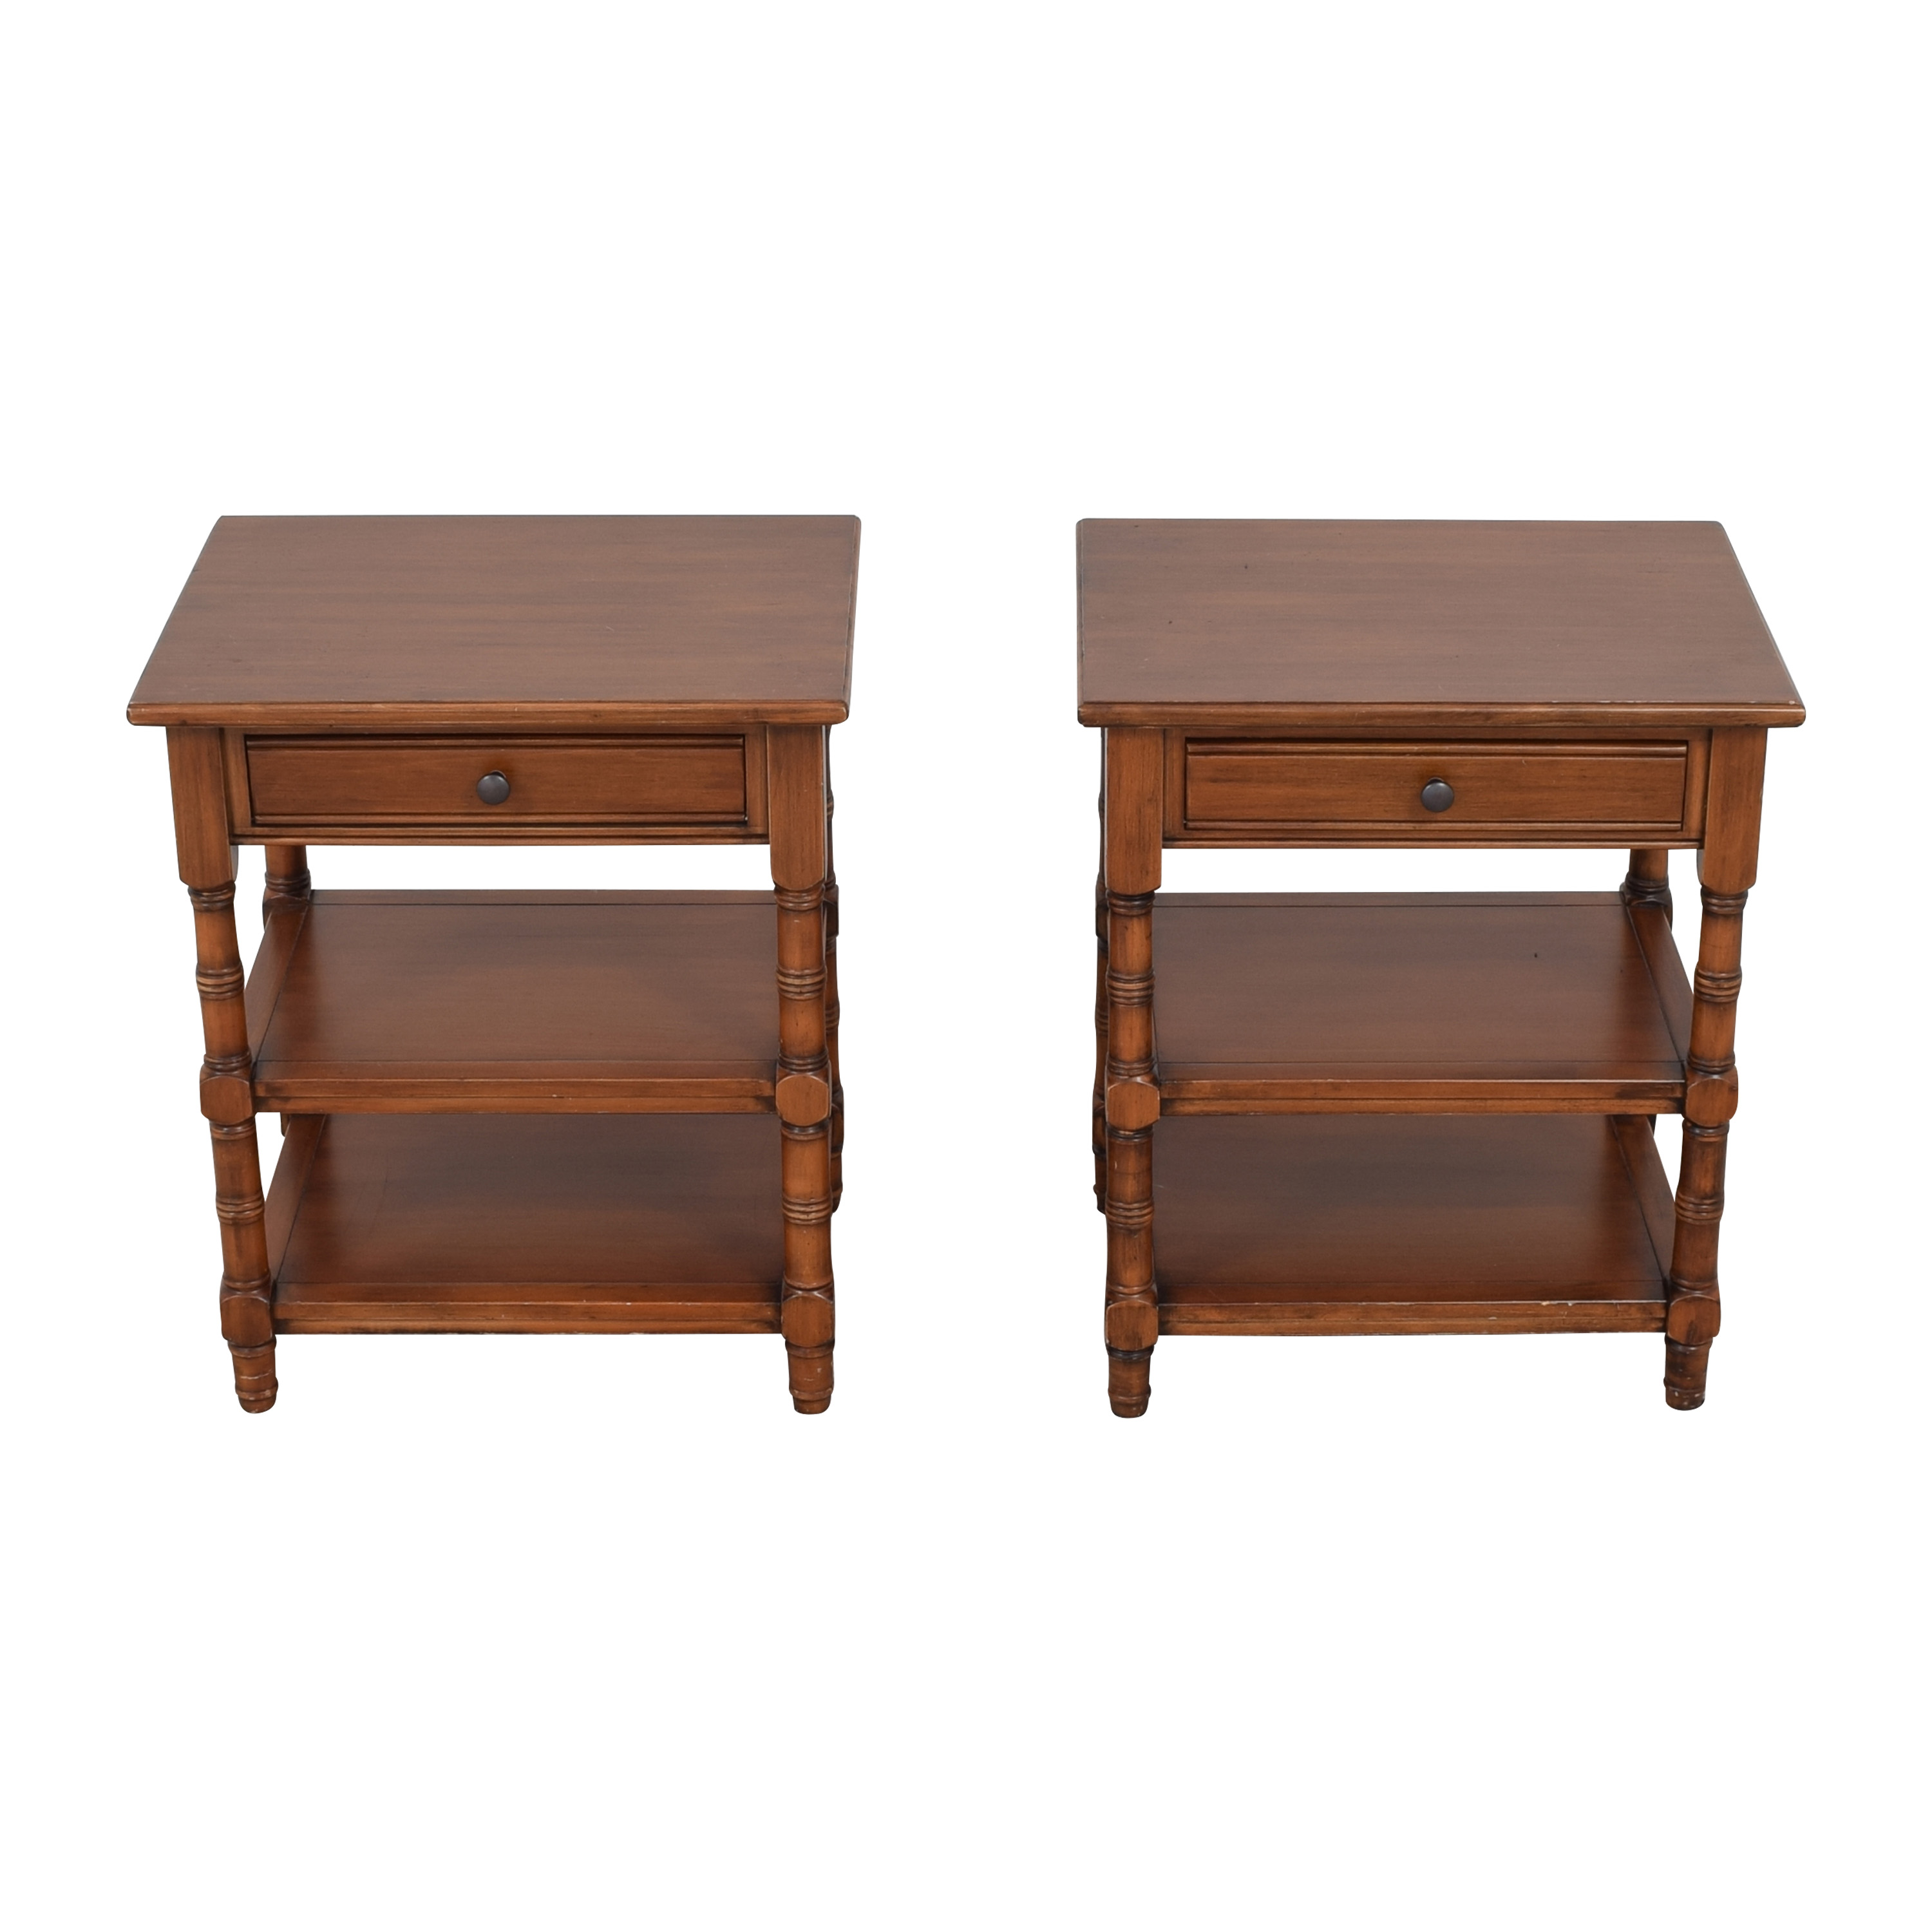 Country Willow Country Willow Nightstands nyc